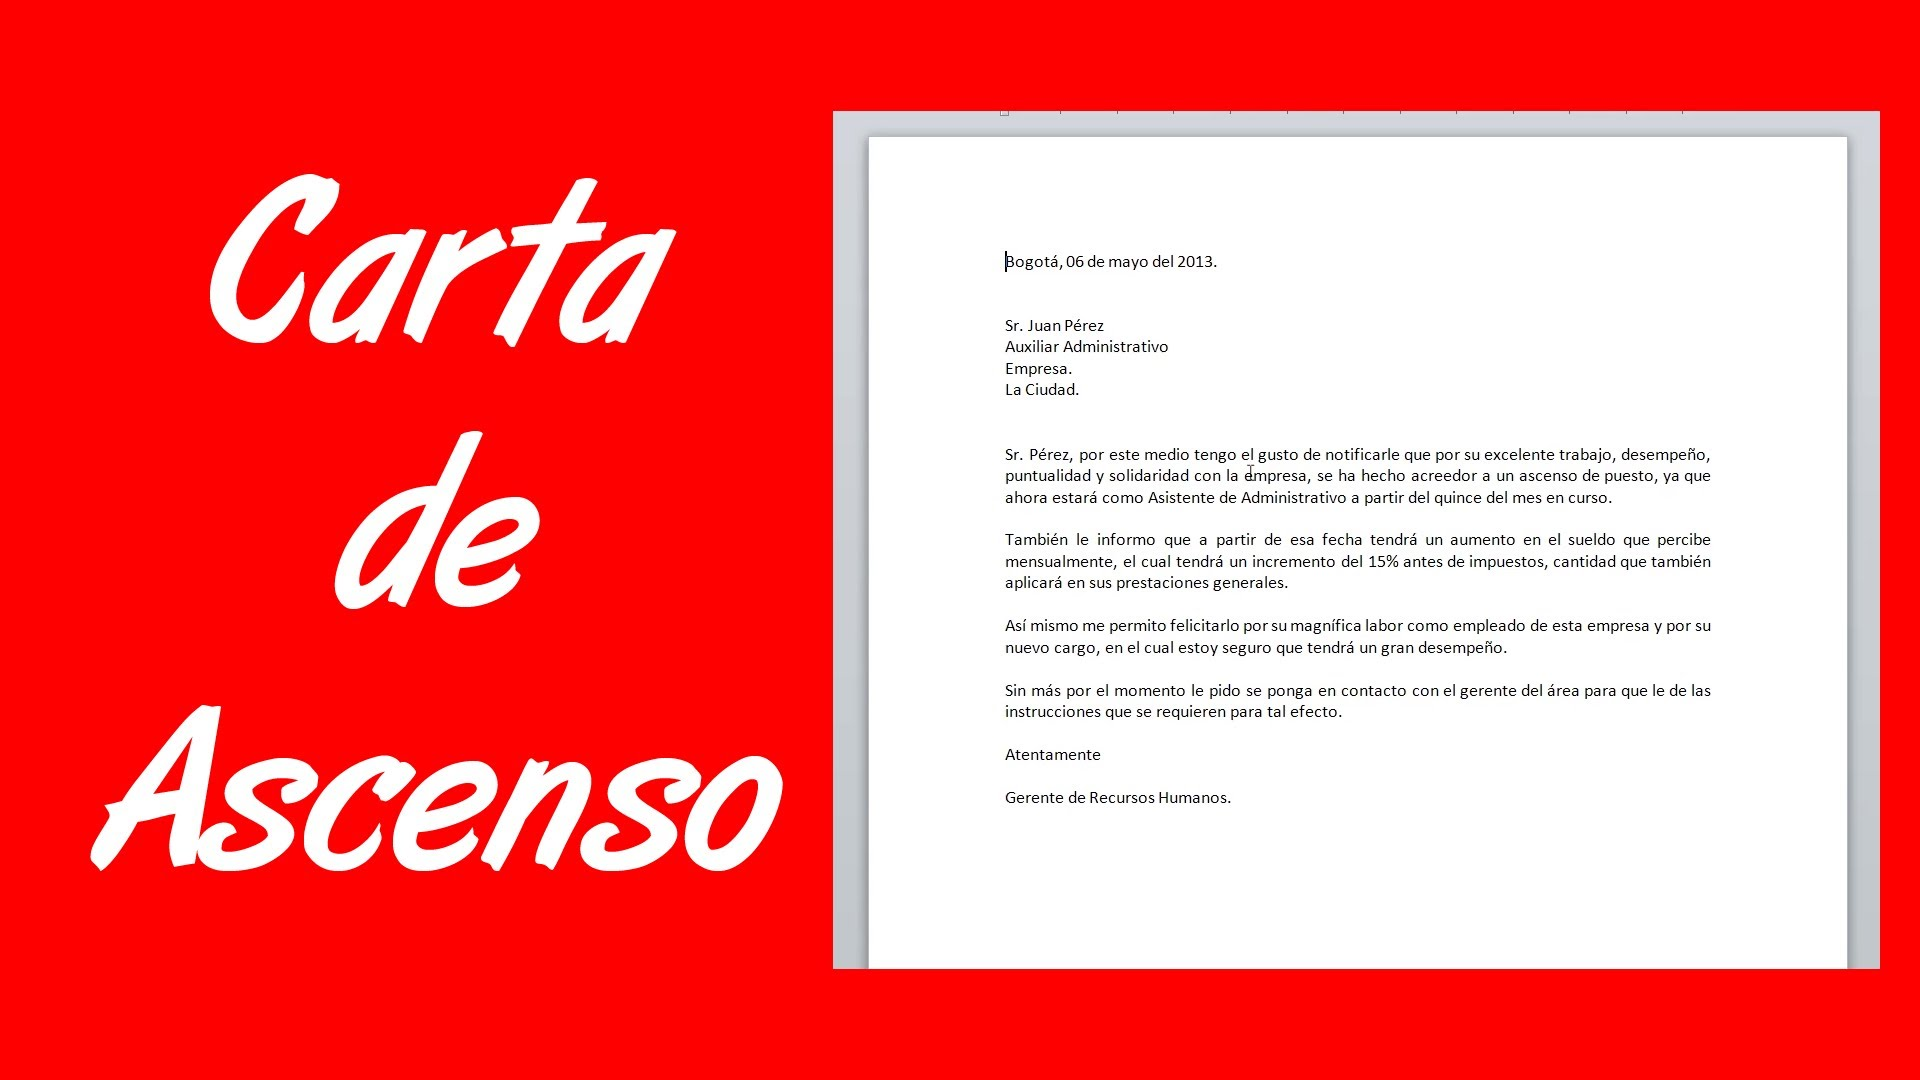 CARTA DE ASCENSO